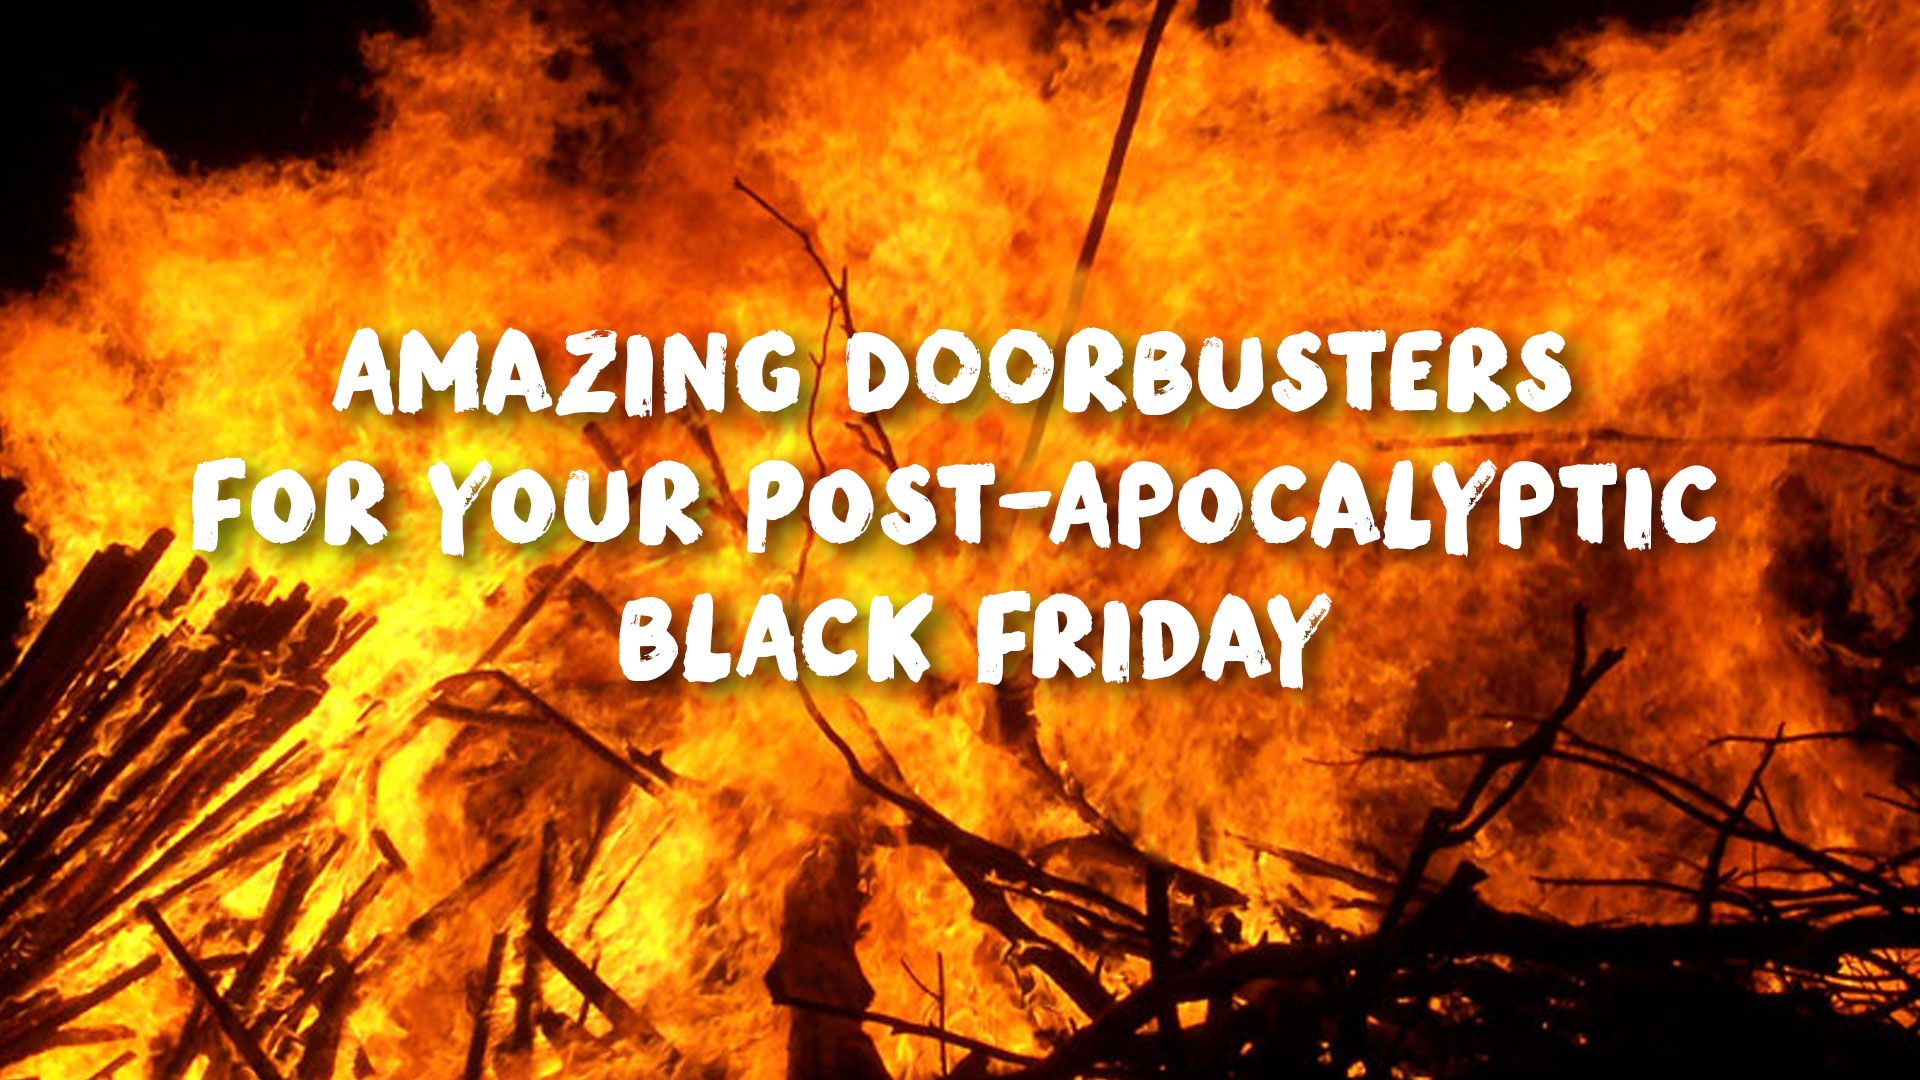 Amazing Doorbusters for Your Post-Apocalyptic Black Friday